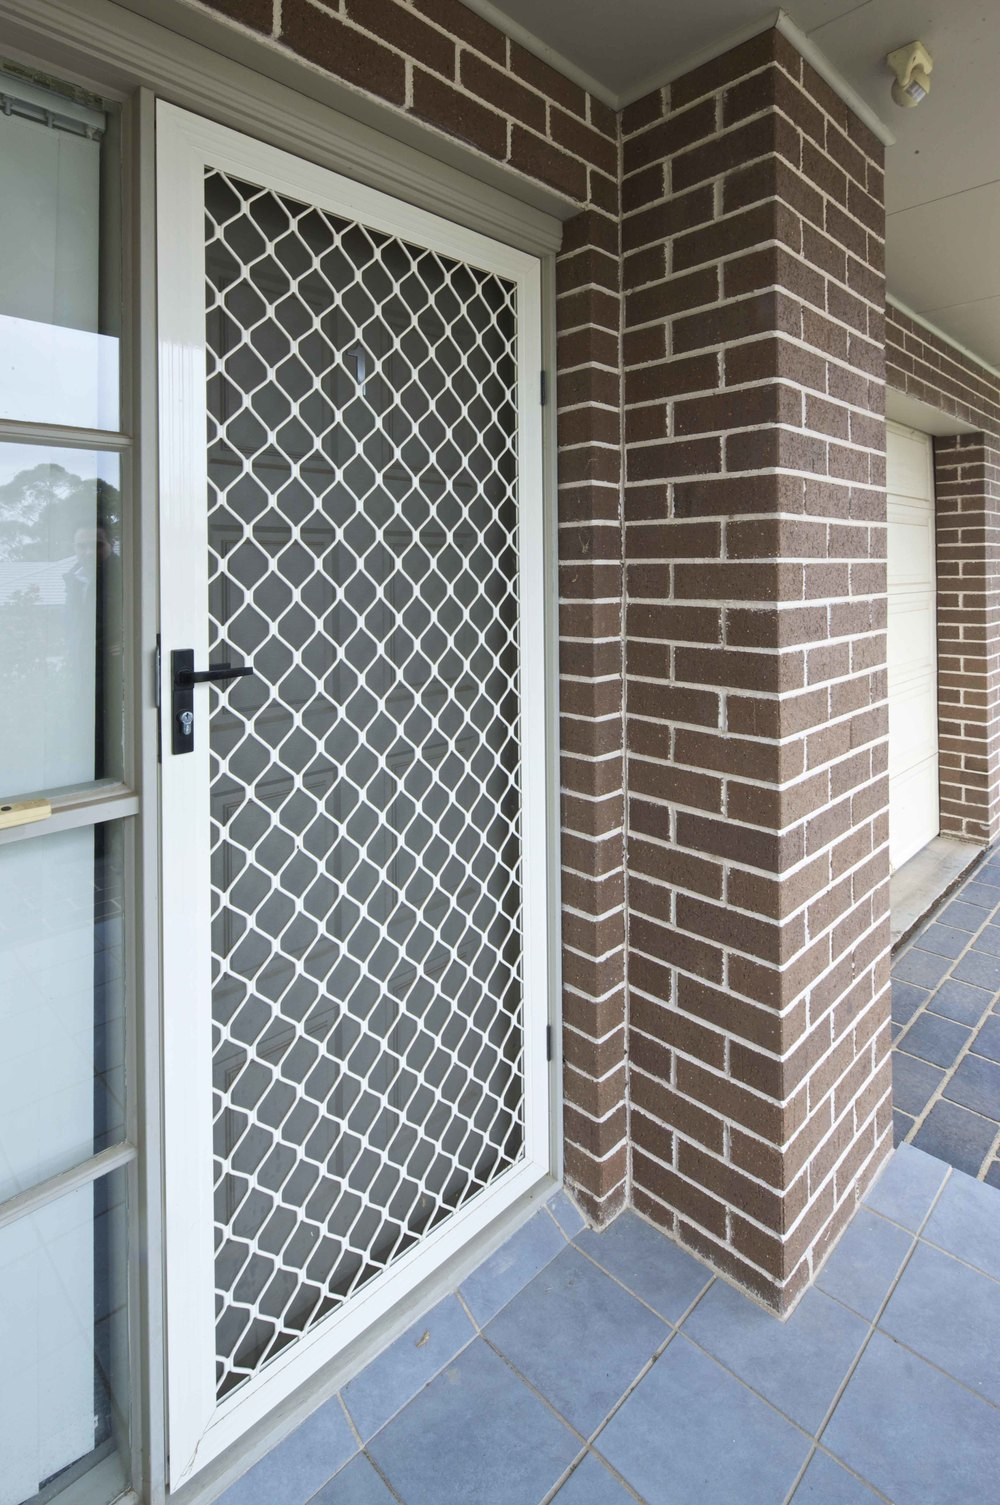 Diamond_Grilles DOOR 2.jpg